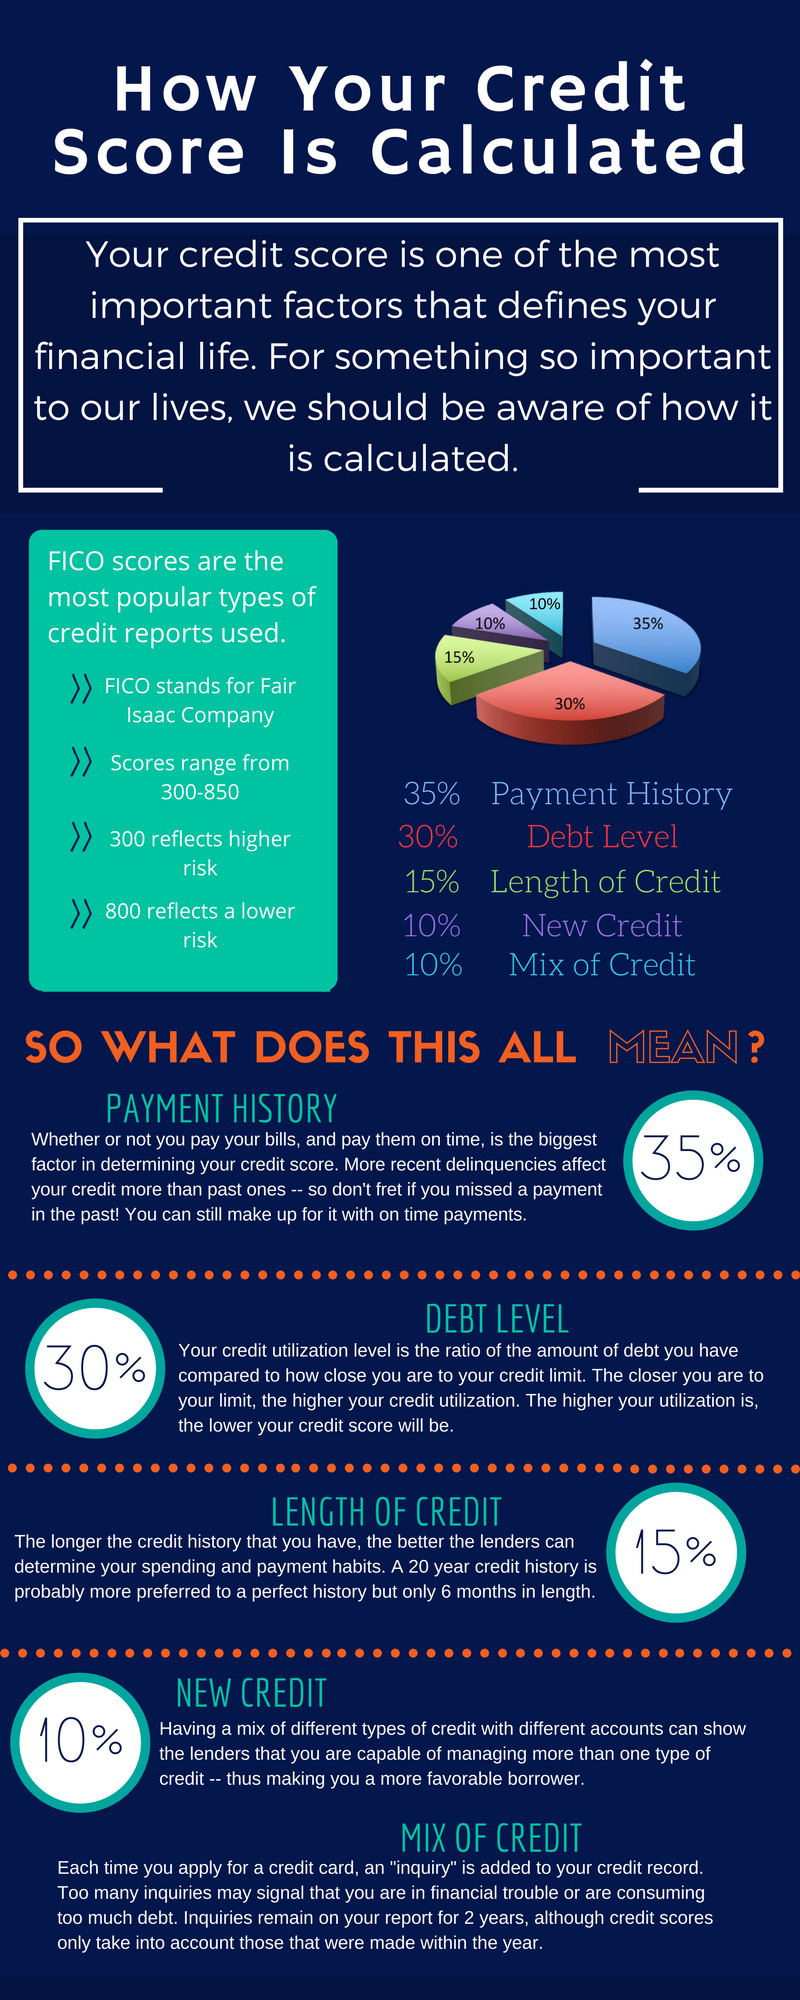 What does your credit score mean